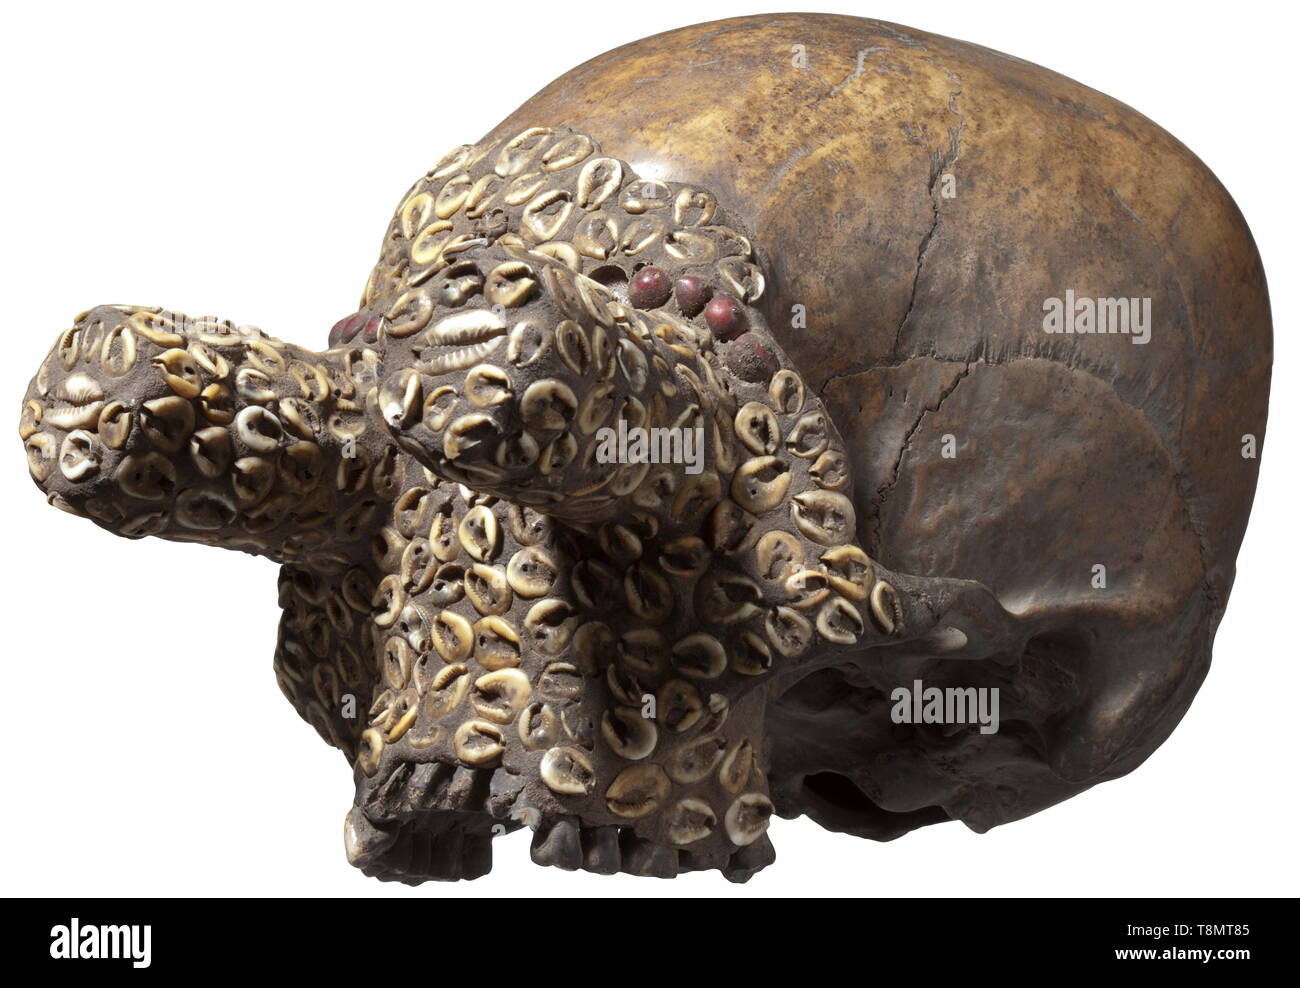 Human Skull Front Stock Photos & Human Skull Front Stock Images - Alamy